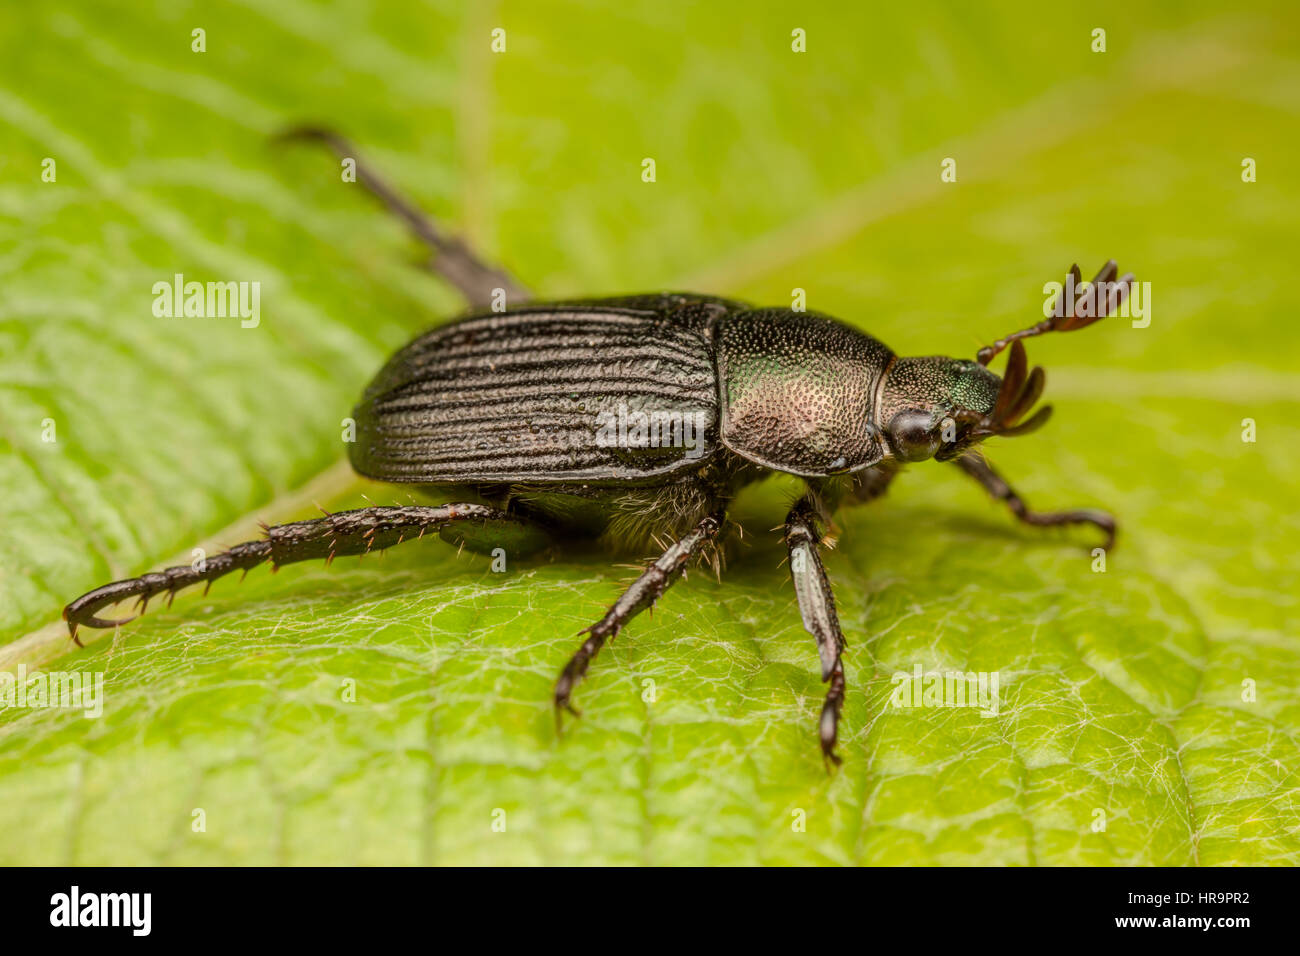 A dark form of the Oriental Beetle (Exomala orientalis) on a leaf. - Stock Image